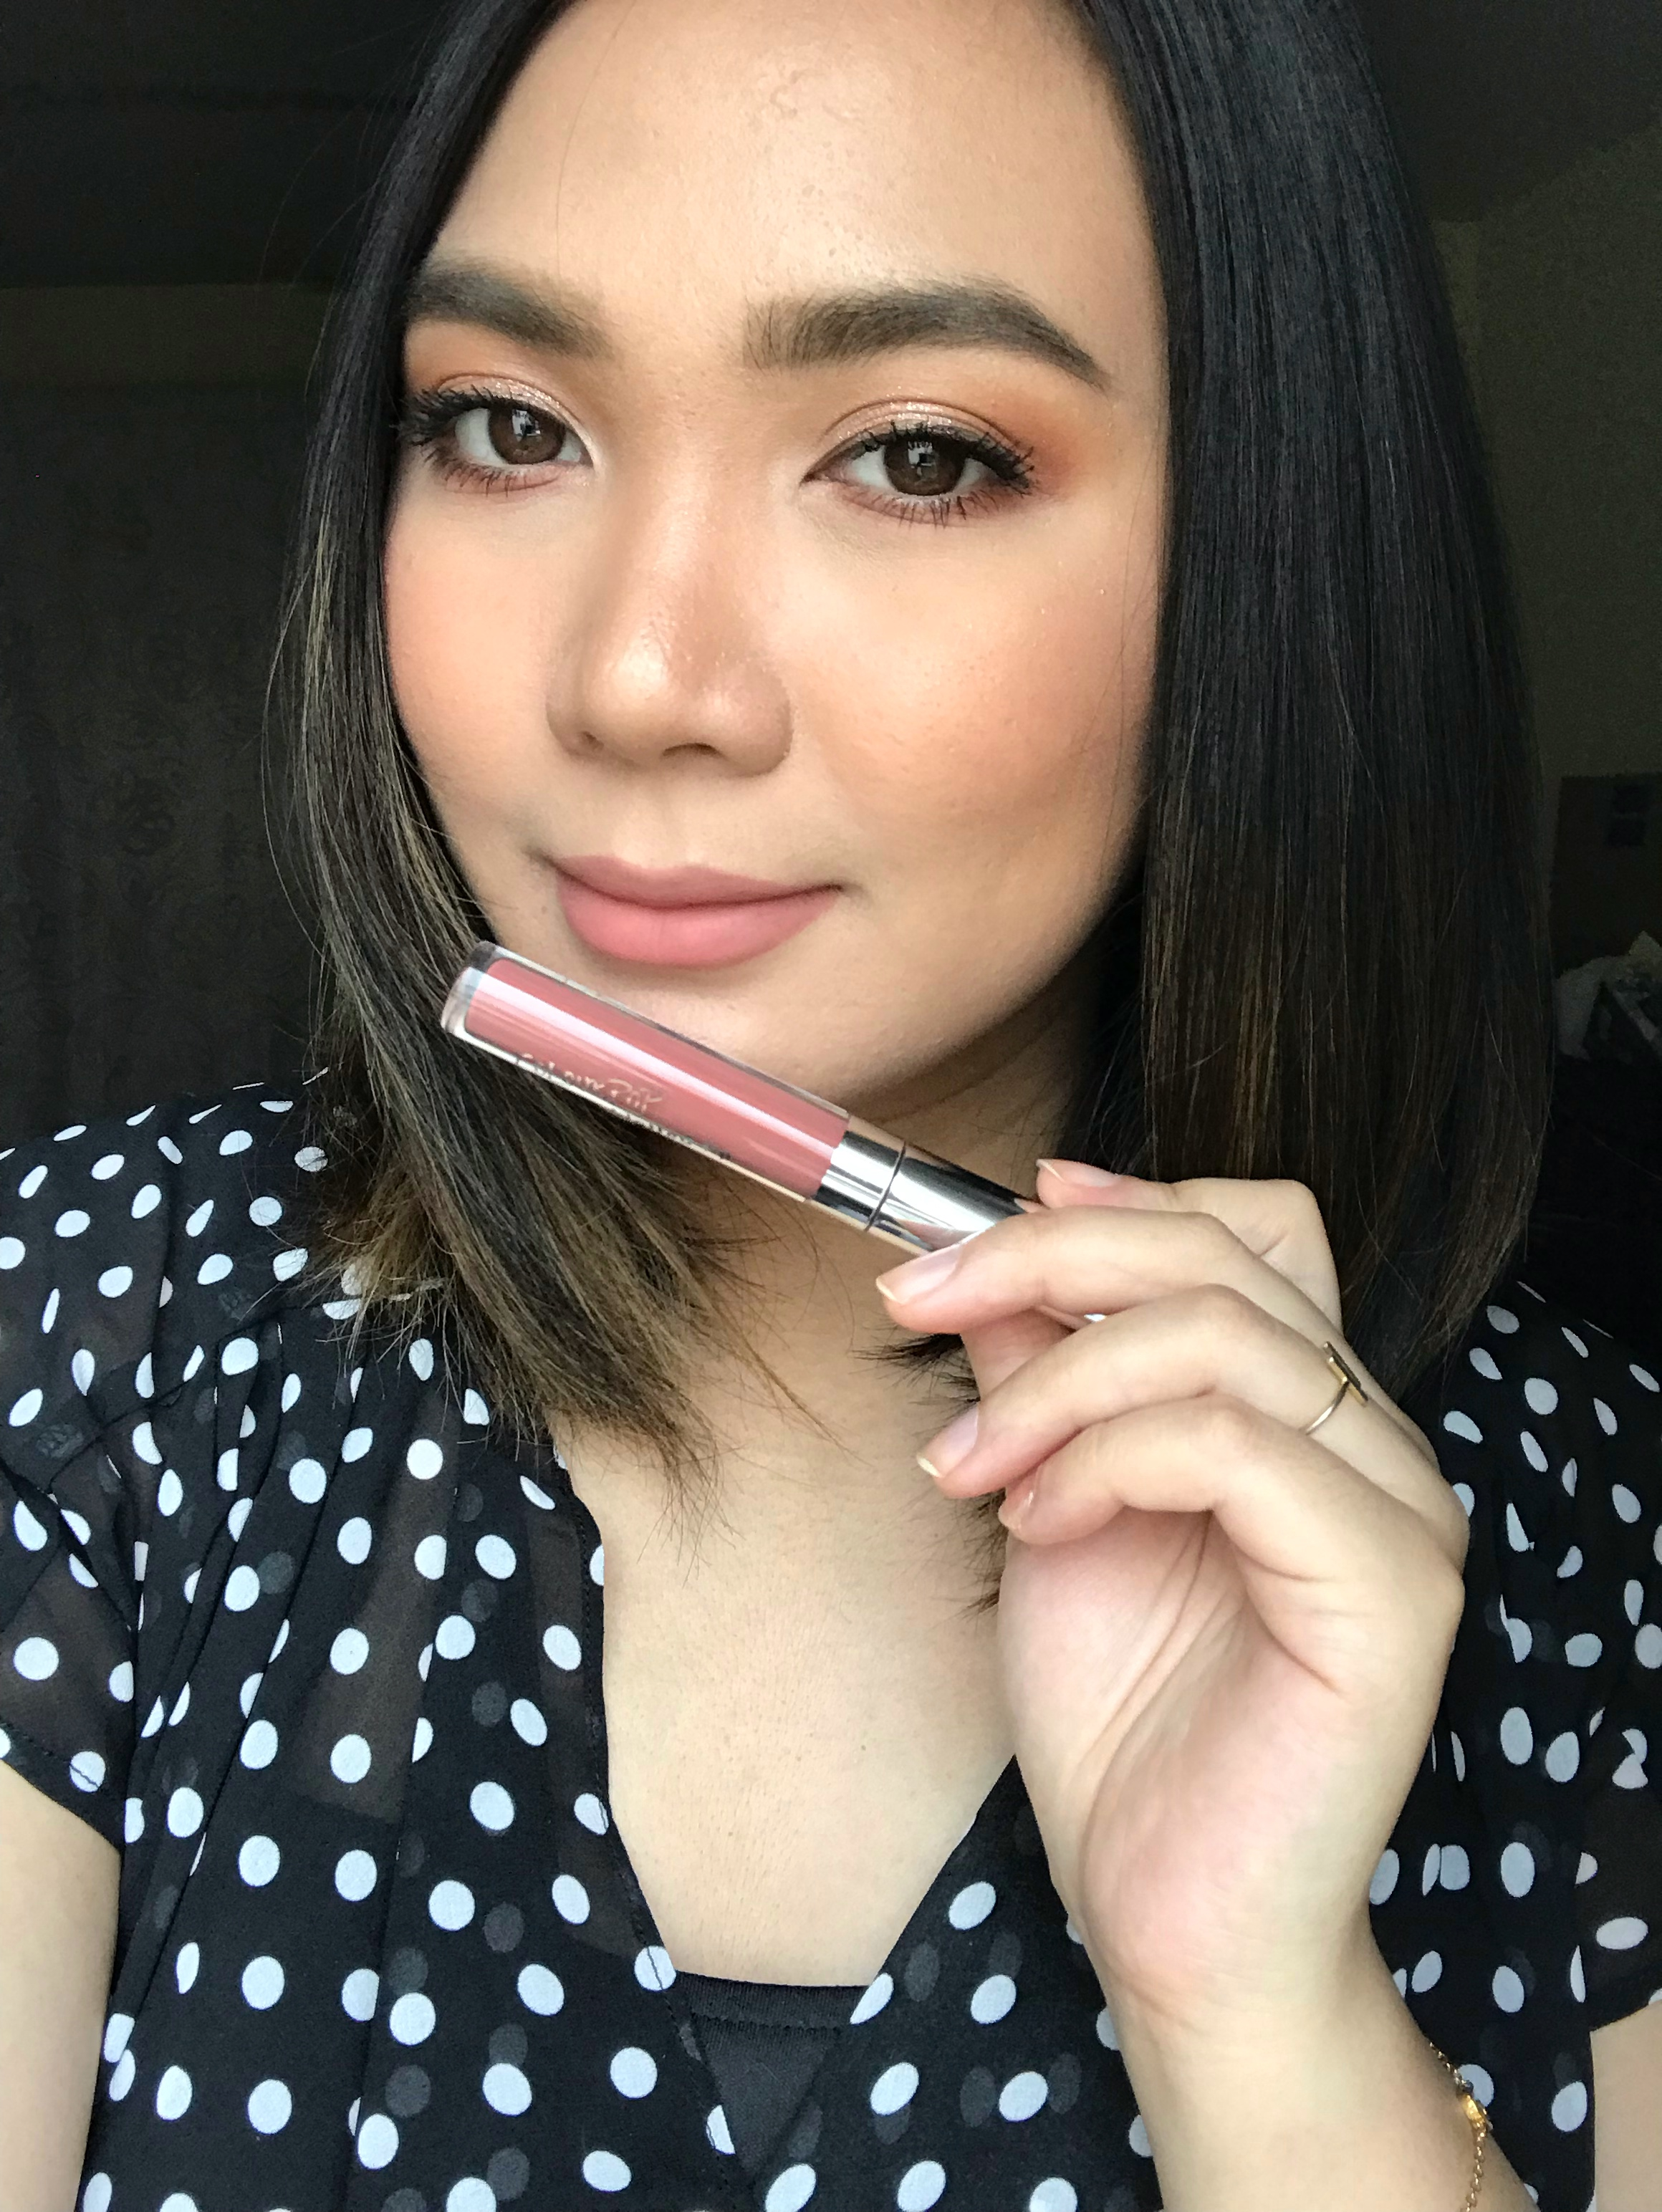 It's transfer-proof, and it makes my lips look so smooth!  THIS PHOTO IS NOT EDITED so you can see the actual color of the lipstick.